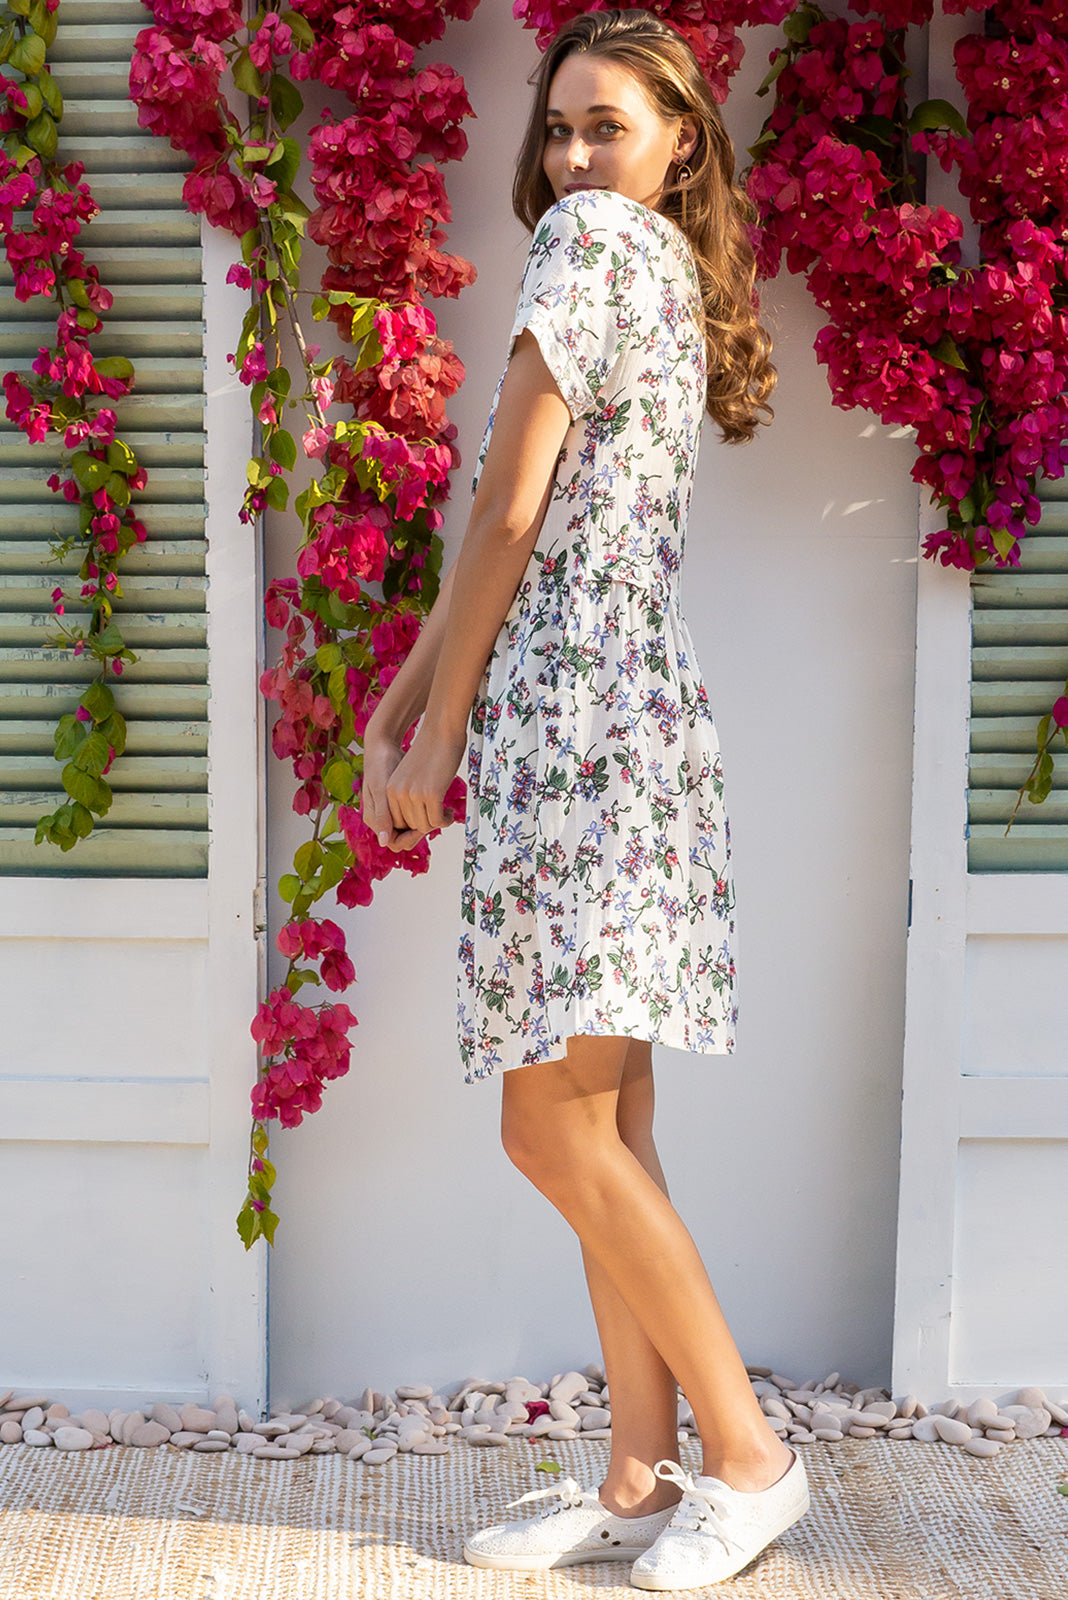 Rosella Windsor White dress features a button front to the drop waist and 2 front pockets in a delicate bohemian floral white based print on a rayon polyester blend fabric